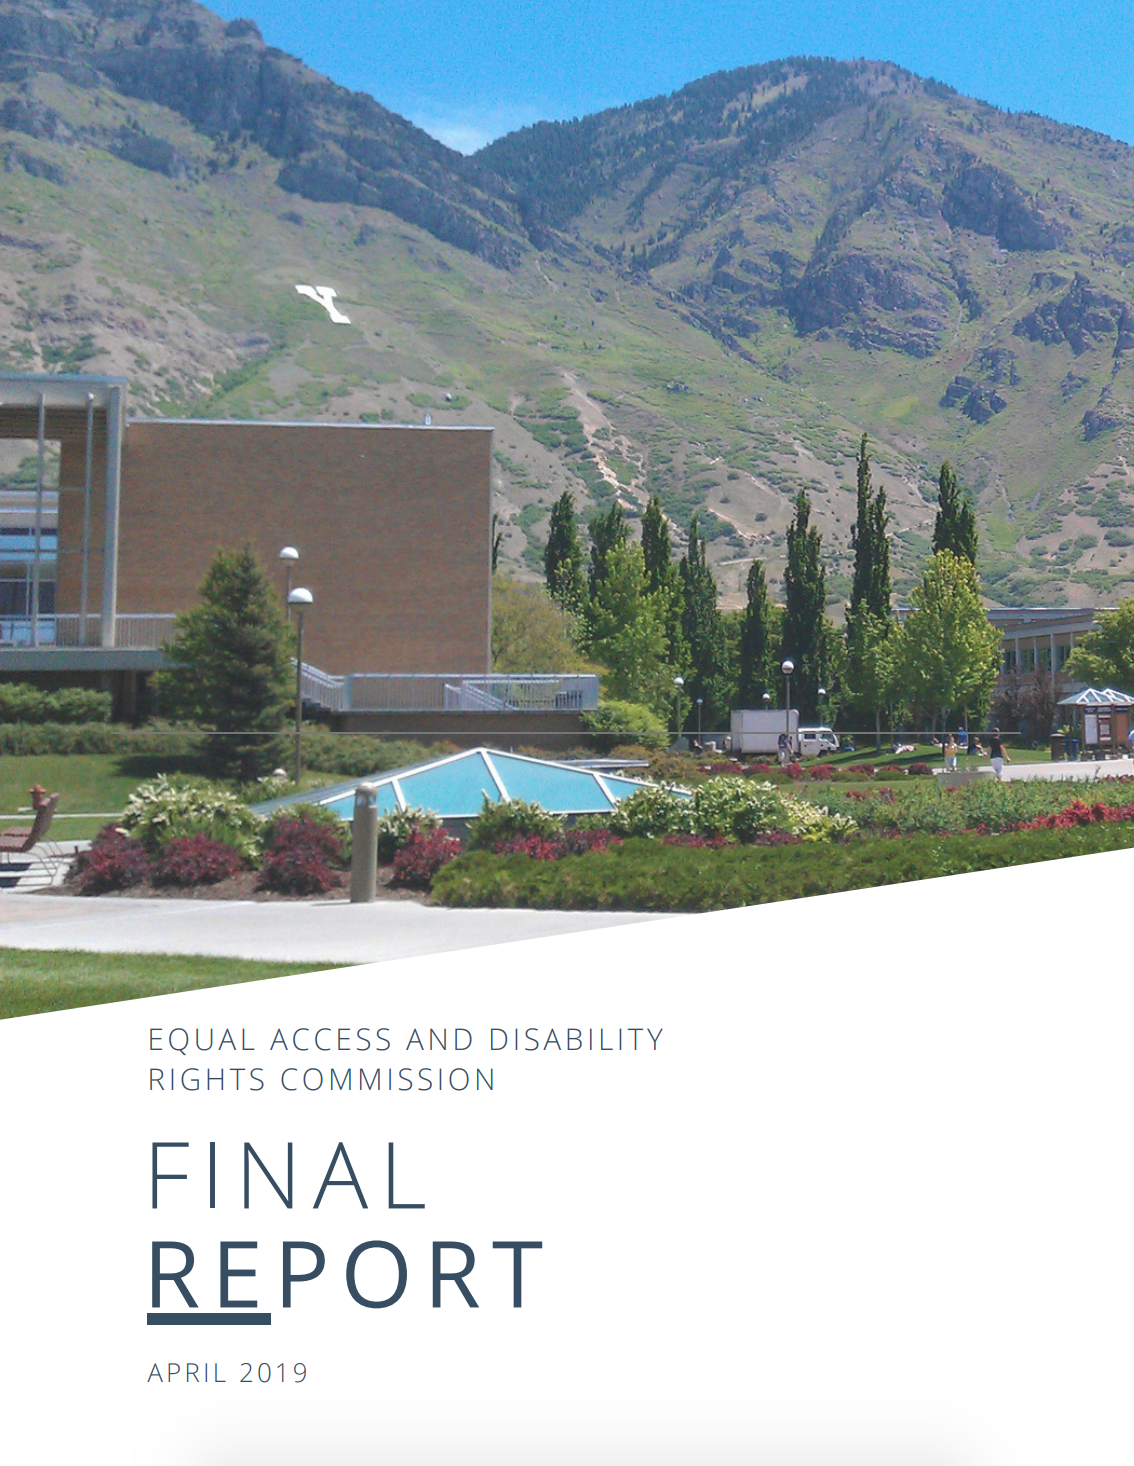 Cover of the Equal Access and Disability Rights Commission Final Report, written April 2019. Image of BYU campus and mountains in the background.